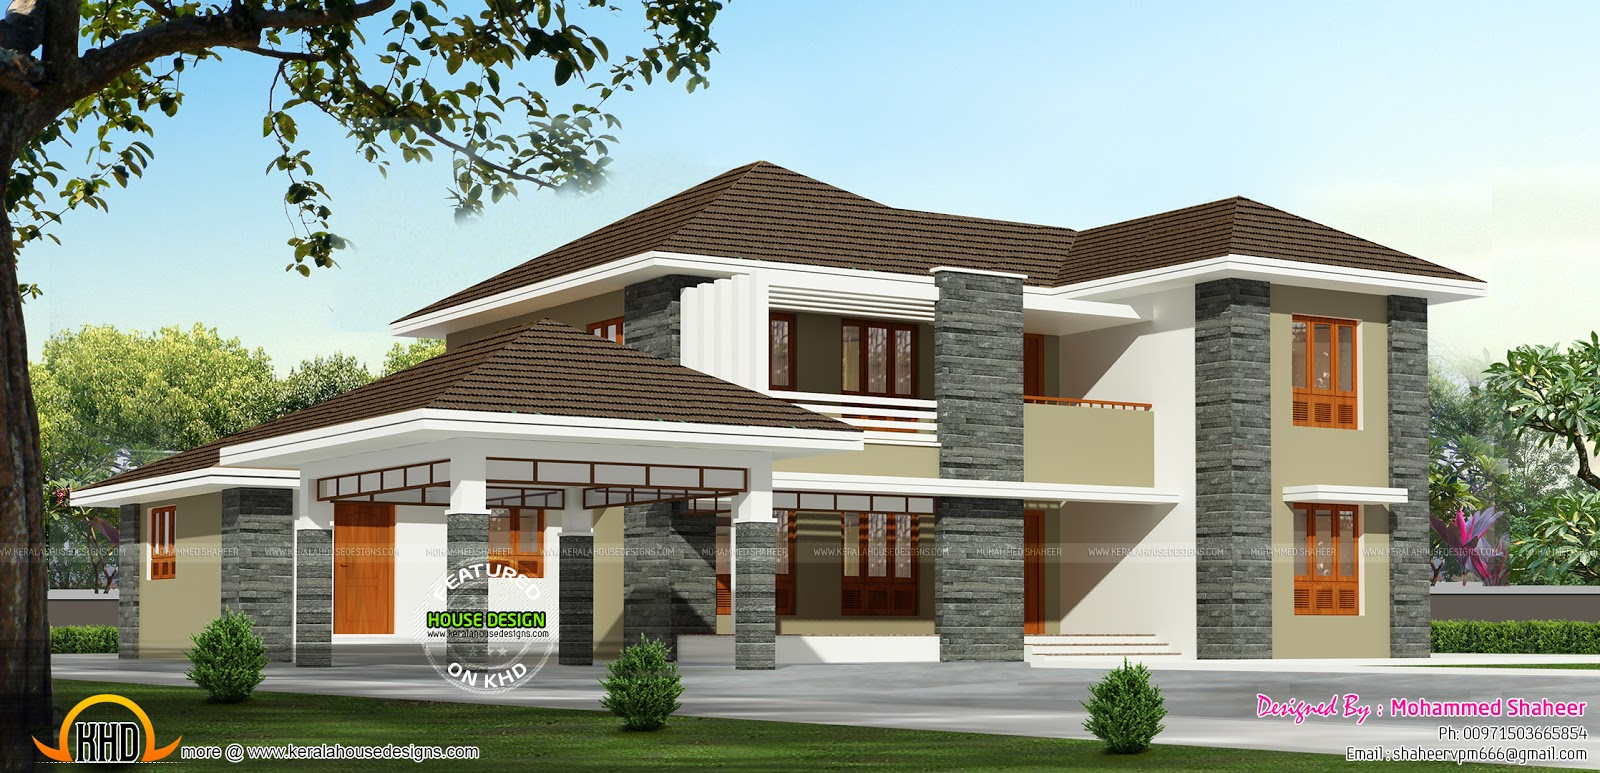 House plans under 100k myideasbedroom 2000 square feet for House plans under 100k